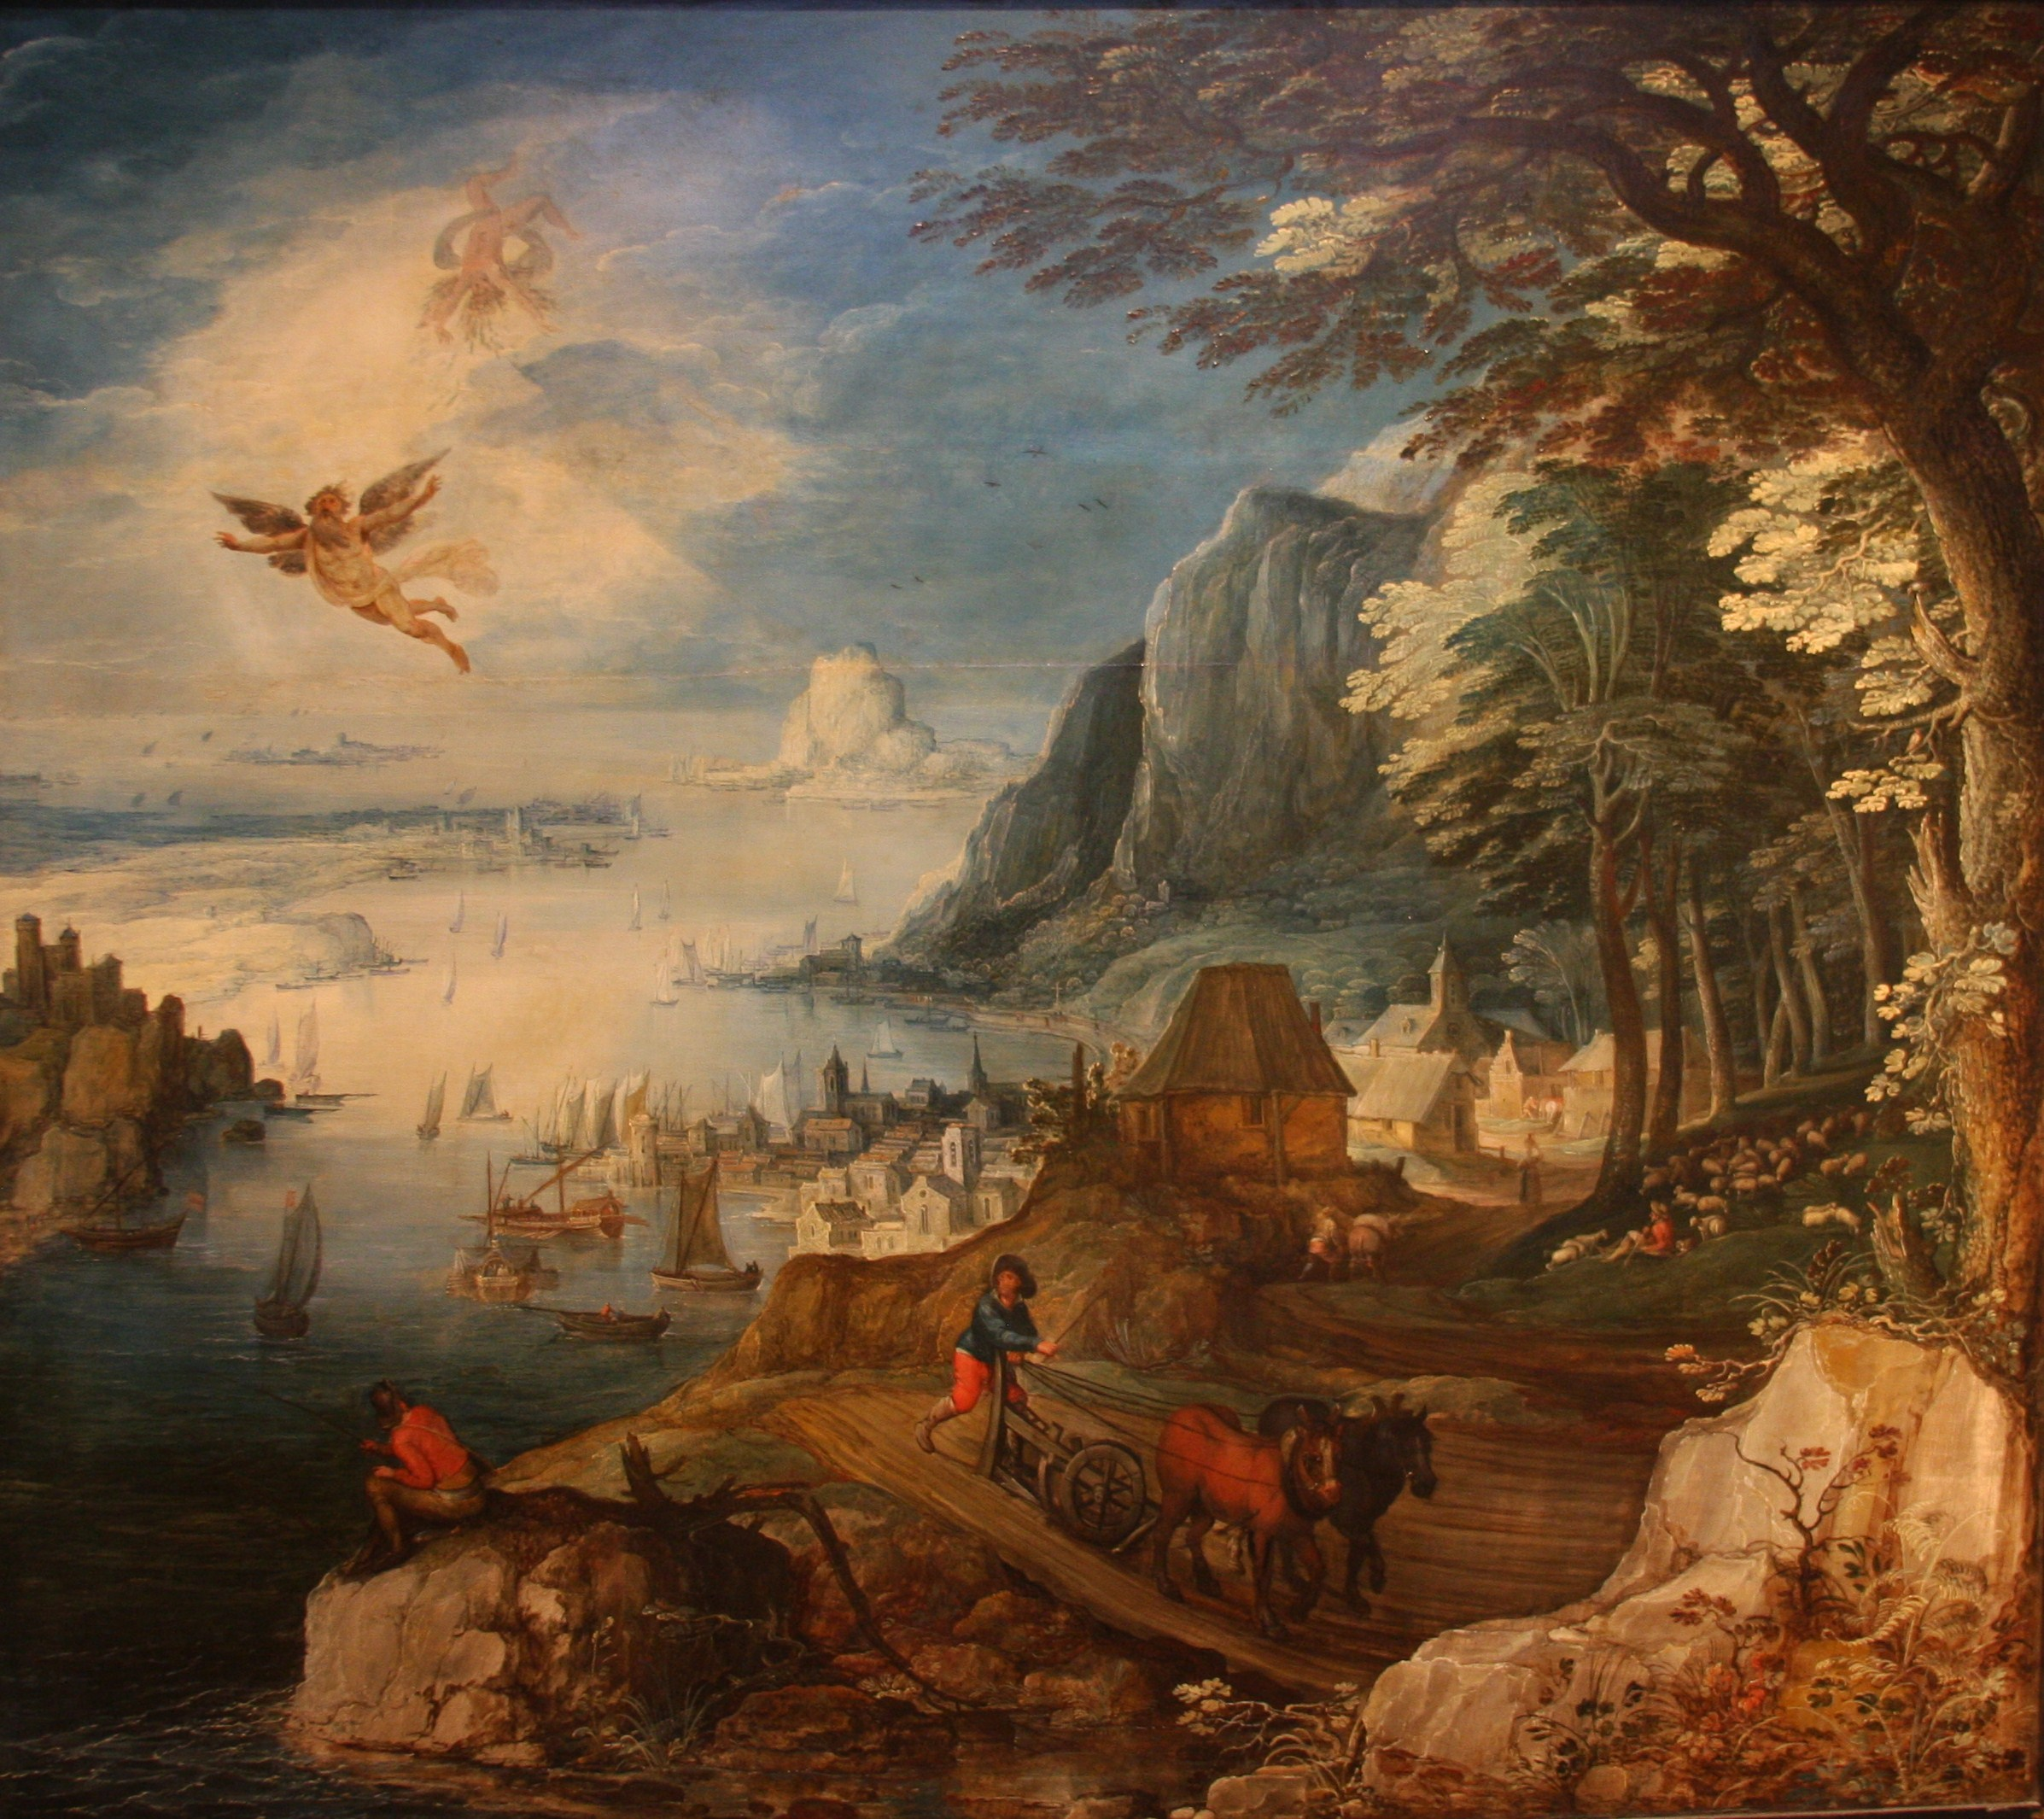 landscape and the fall of icarus Landscape with the fall of icarus pieter bruegel the elder undated royal museums of fine arts of belgium from the collection of royal museums of fine arts of belgium it is uncertain that pieter bruegel the elder produced this piece, but we are sure, however, that it is his design another version of this work can be found in the van buuren.